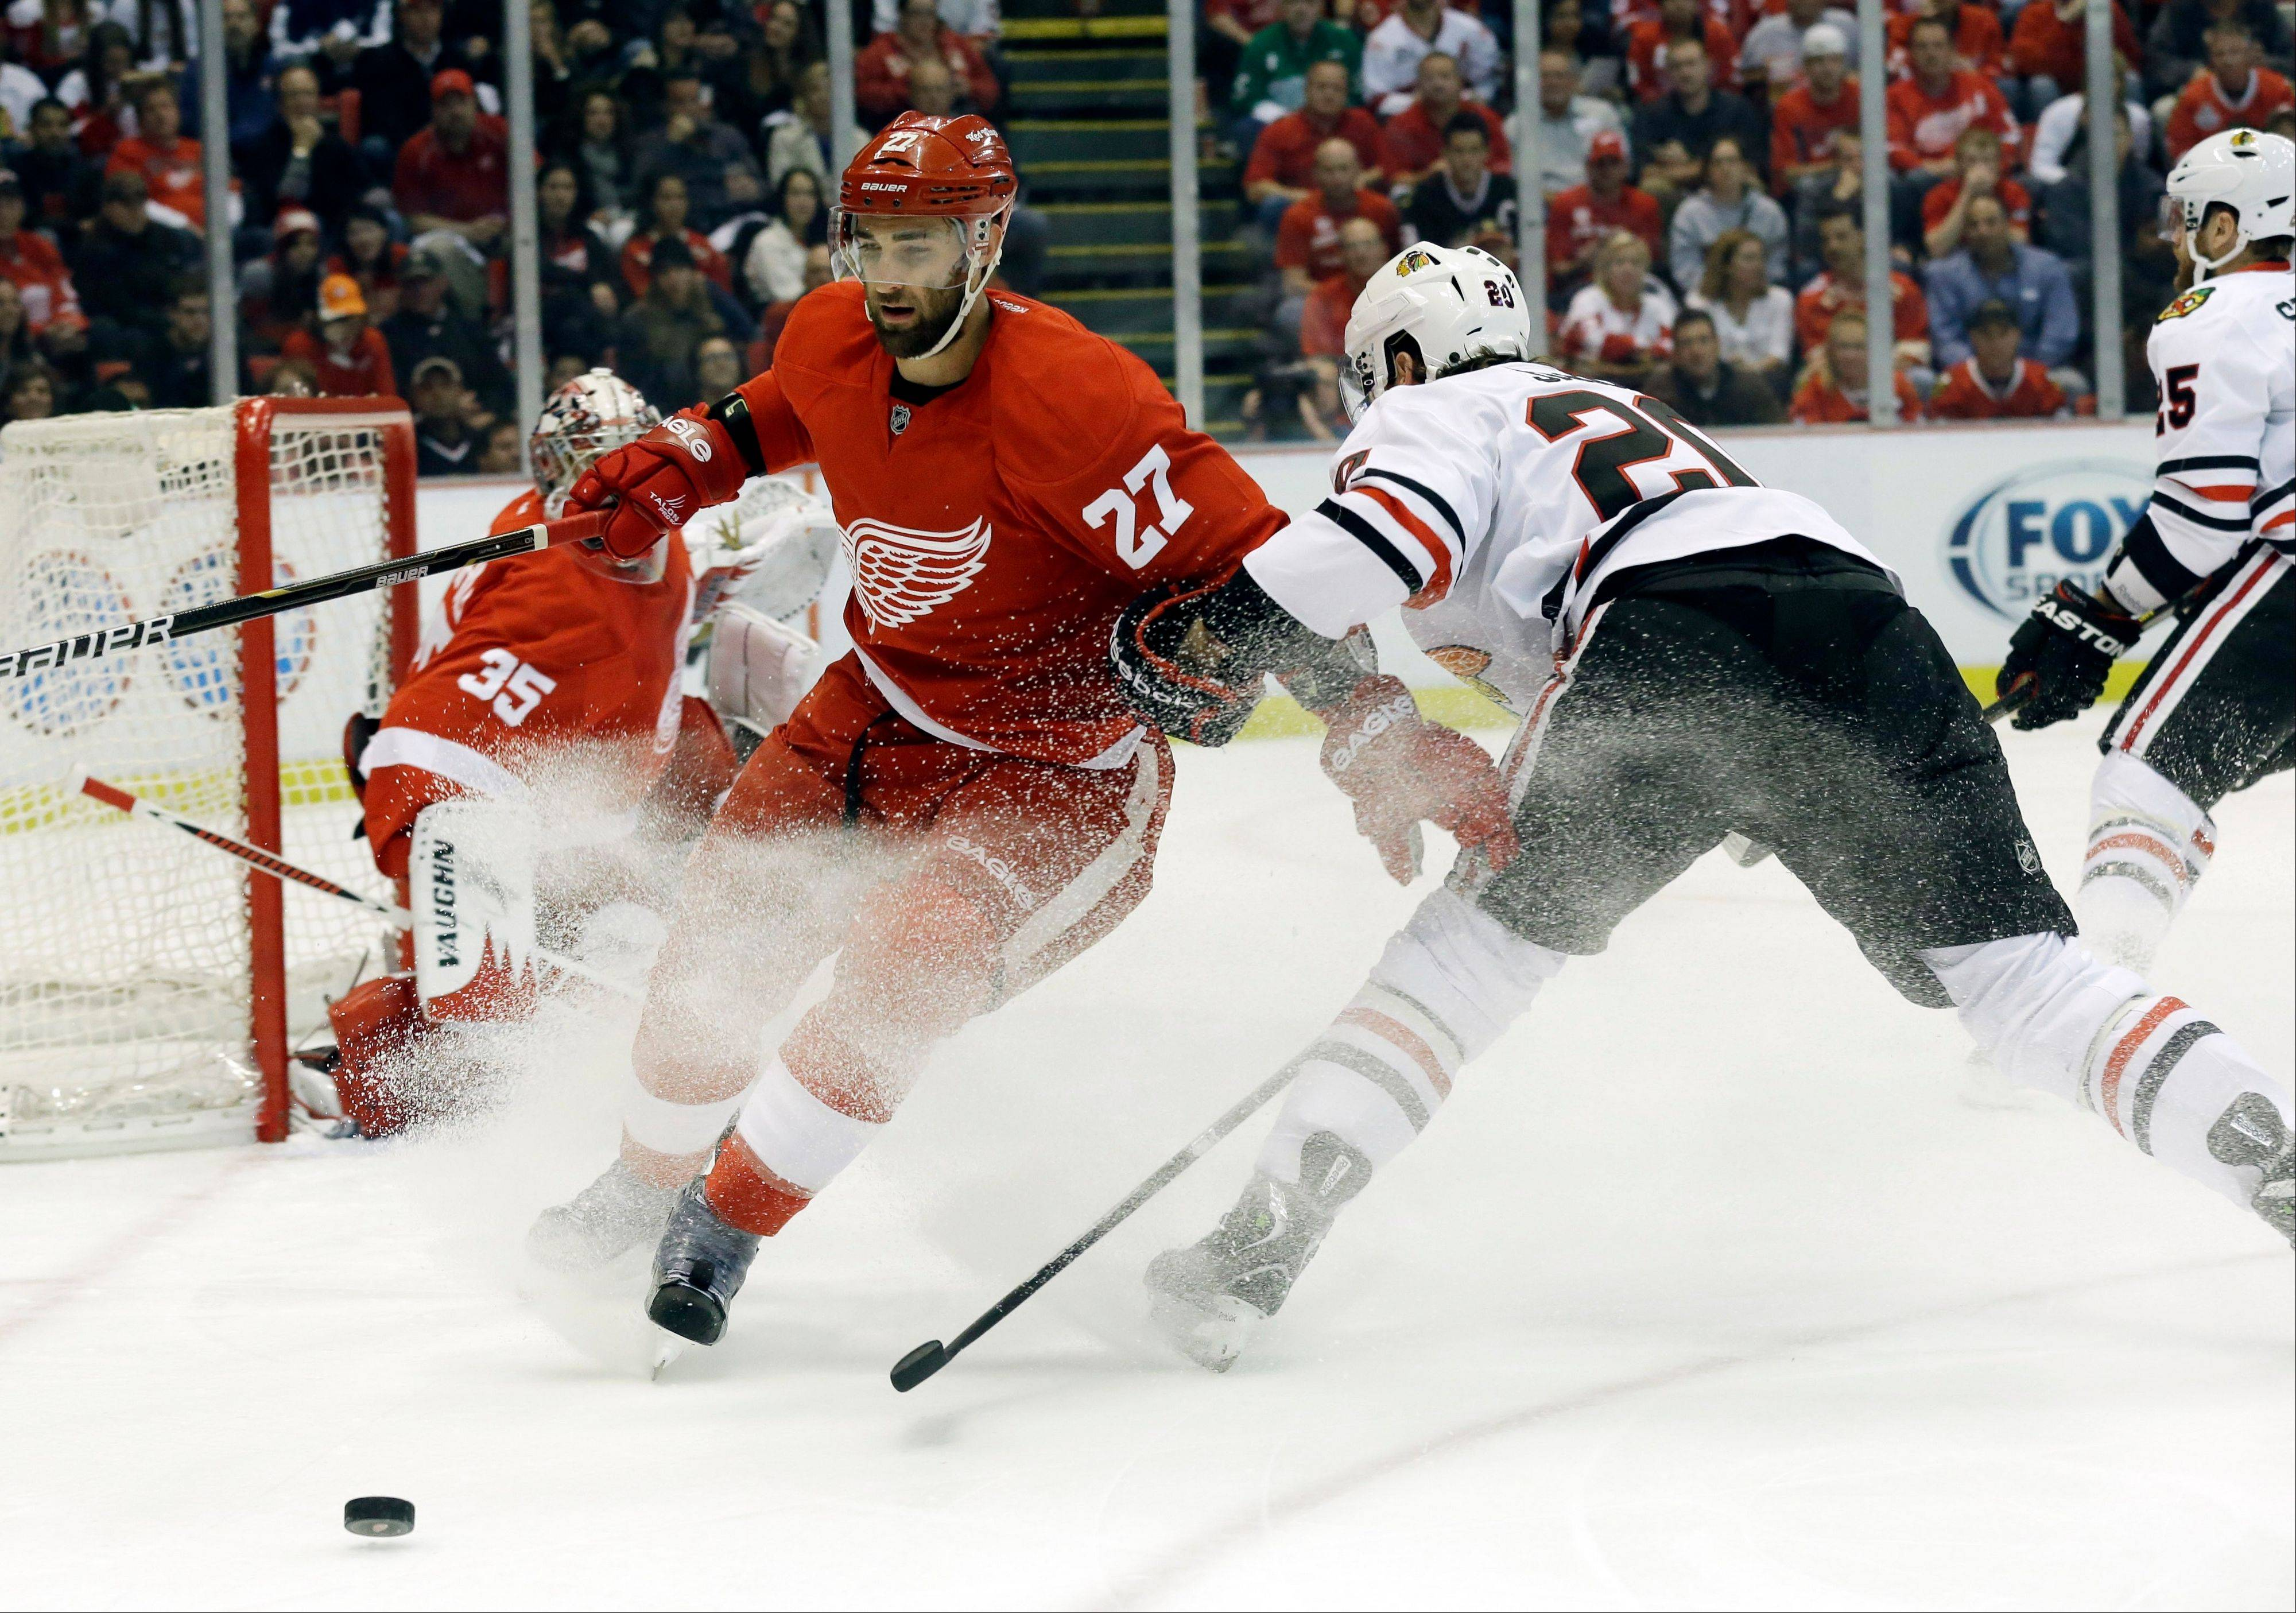 Detroit Red Wings defenseman Kyle Quincey (27) and Chicago Blackhawks left wing Brandon Saad (20) battle for the puck during the first period.